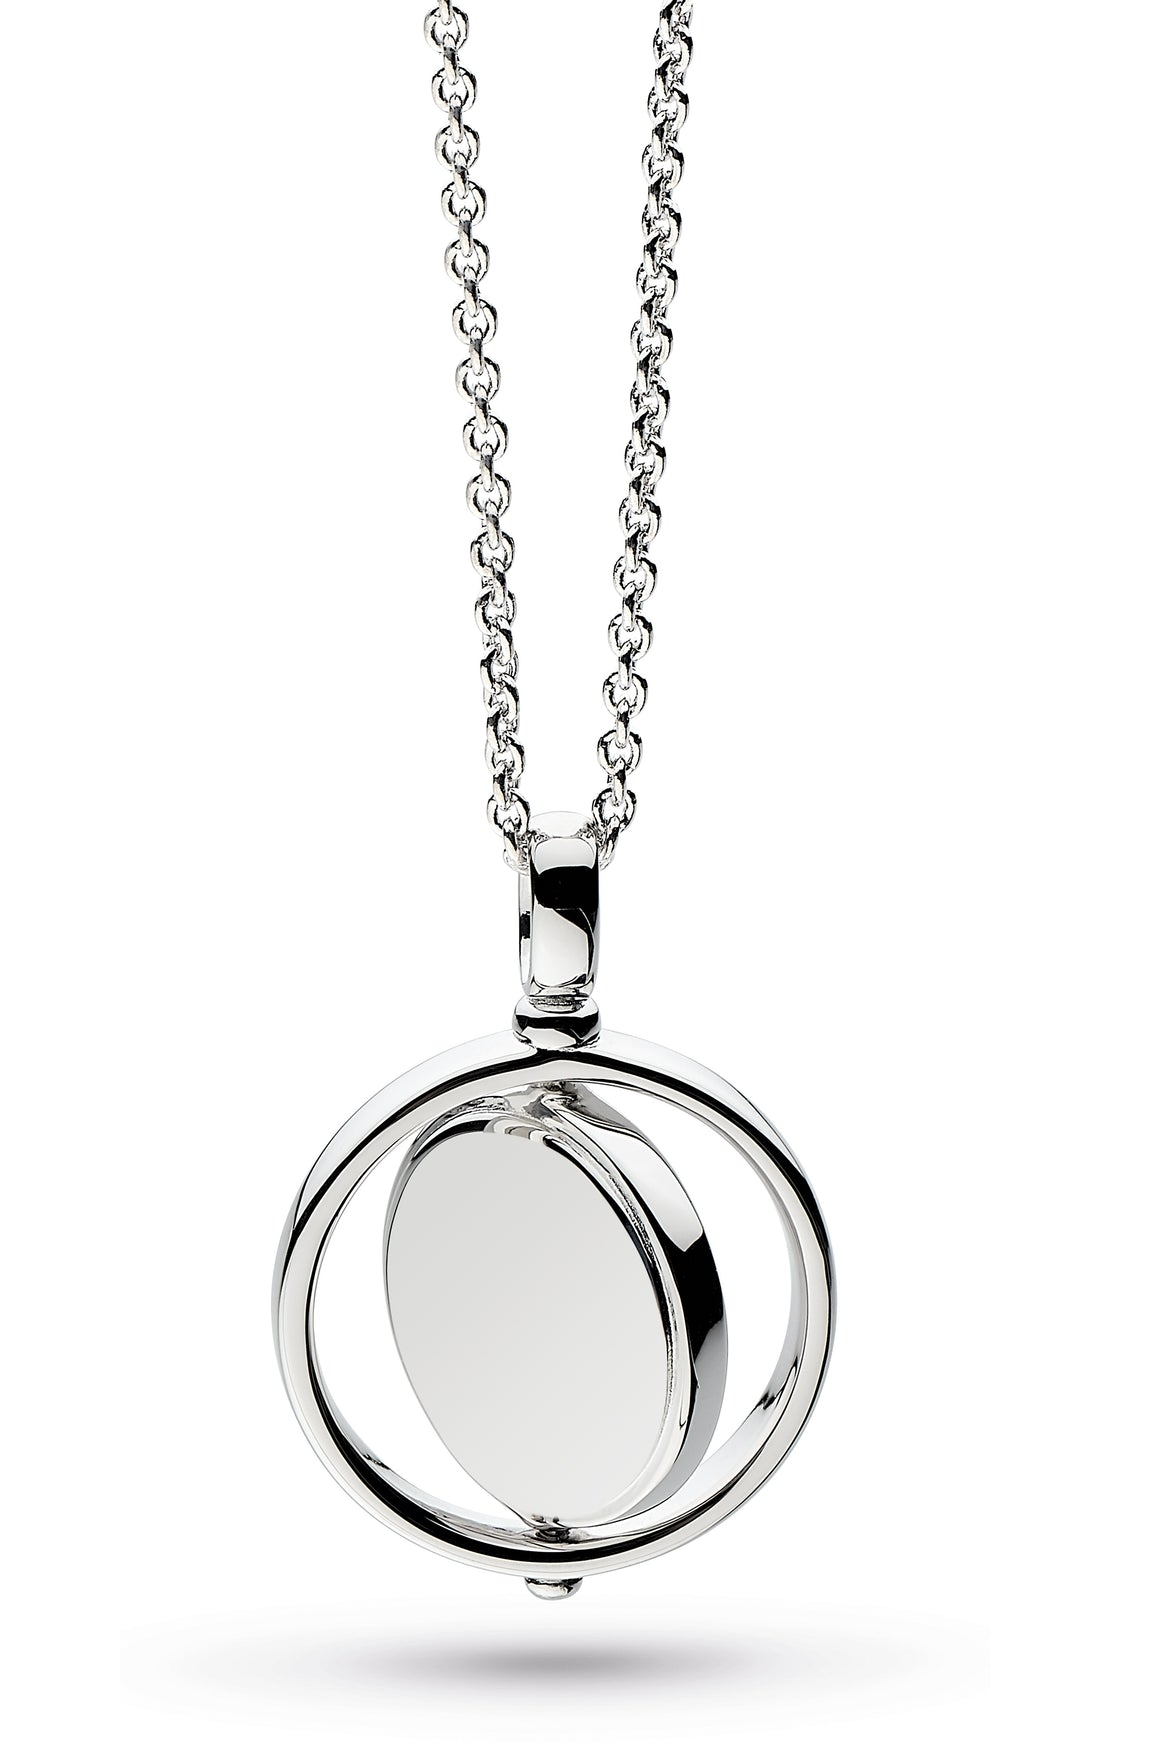 Empire Revival Round Spinner Necklace - 90385rp029